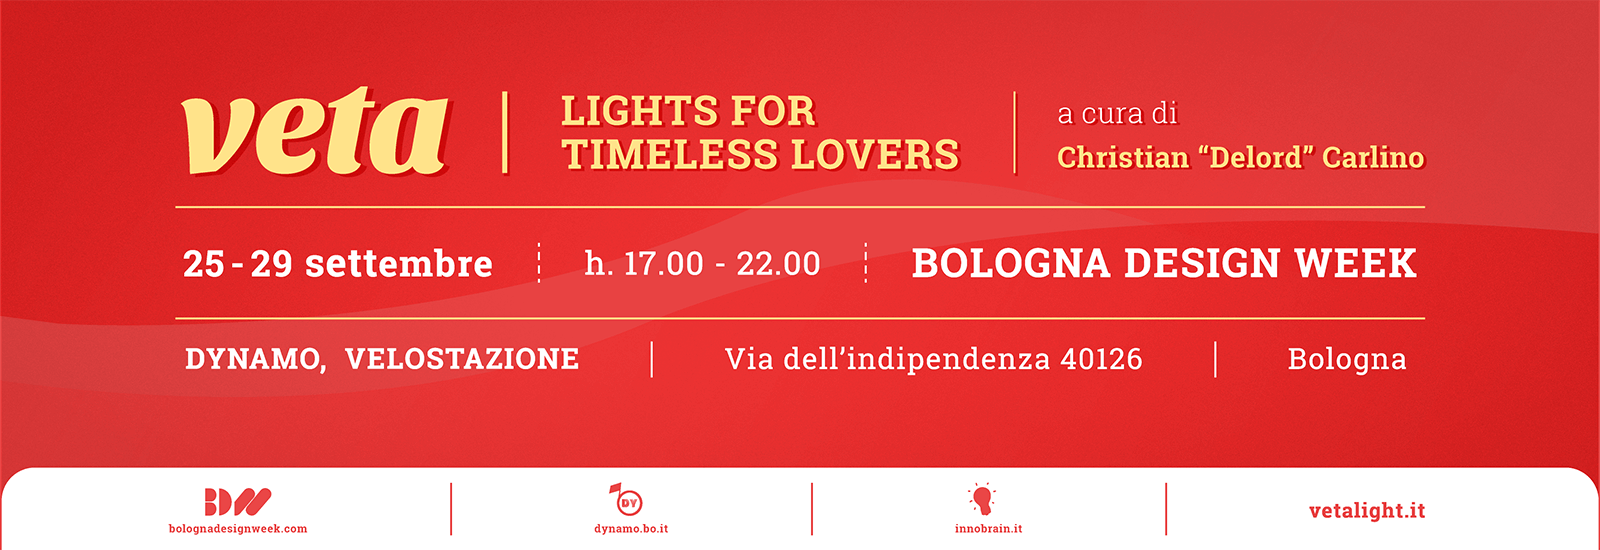 Comunicato Stampa - VETA, lights for timeless lovers - Bologna Design Week @ Dynamo Velostazione